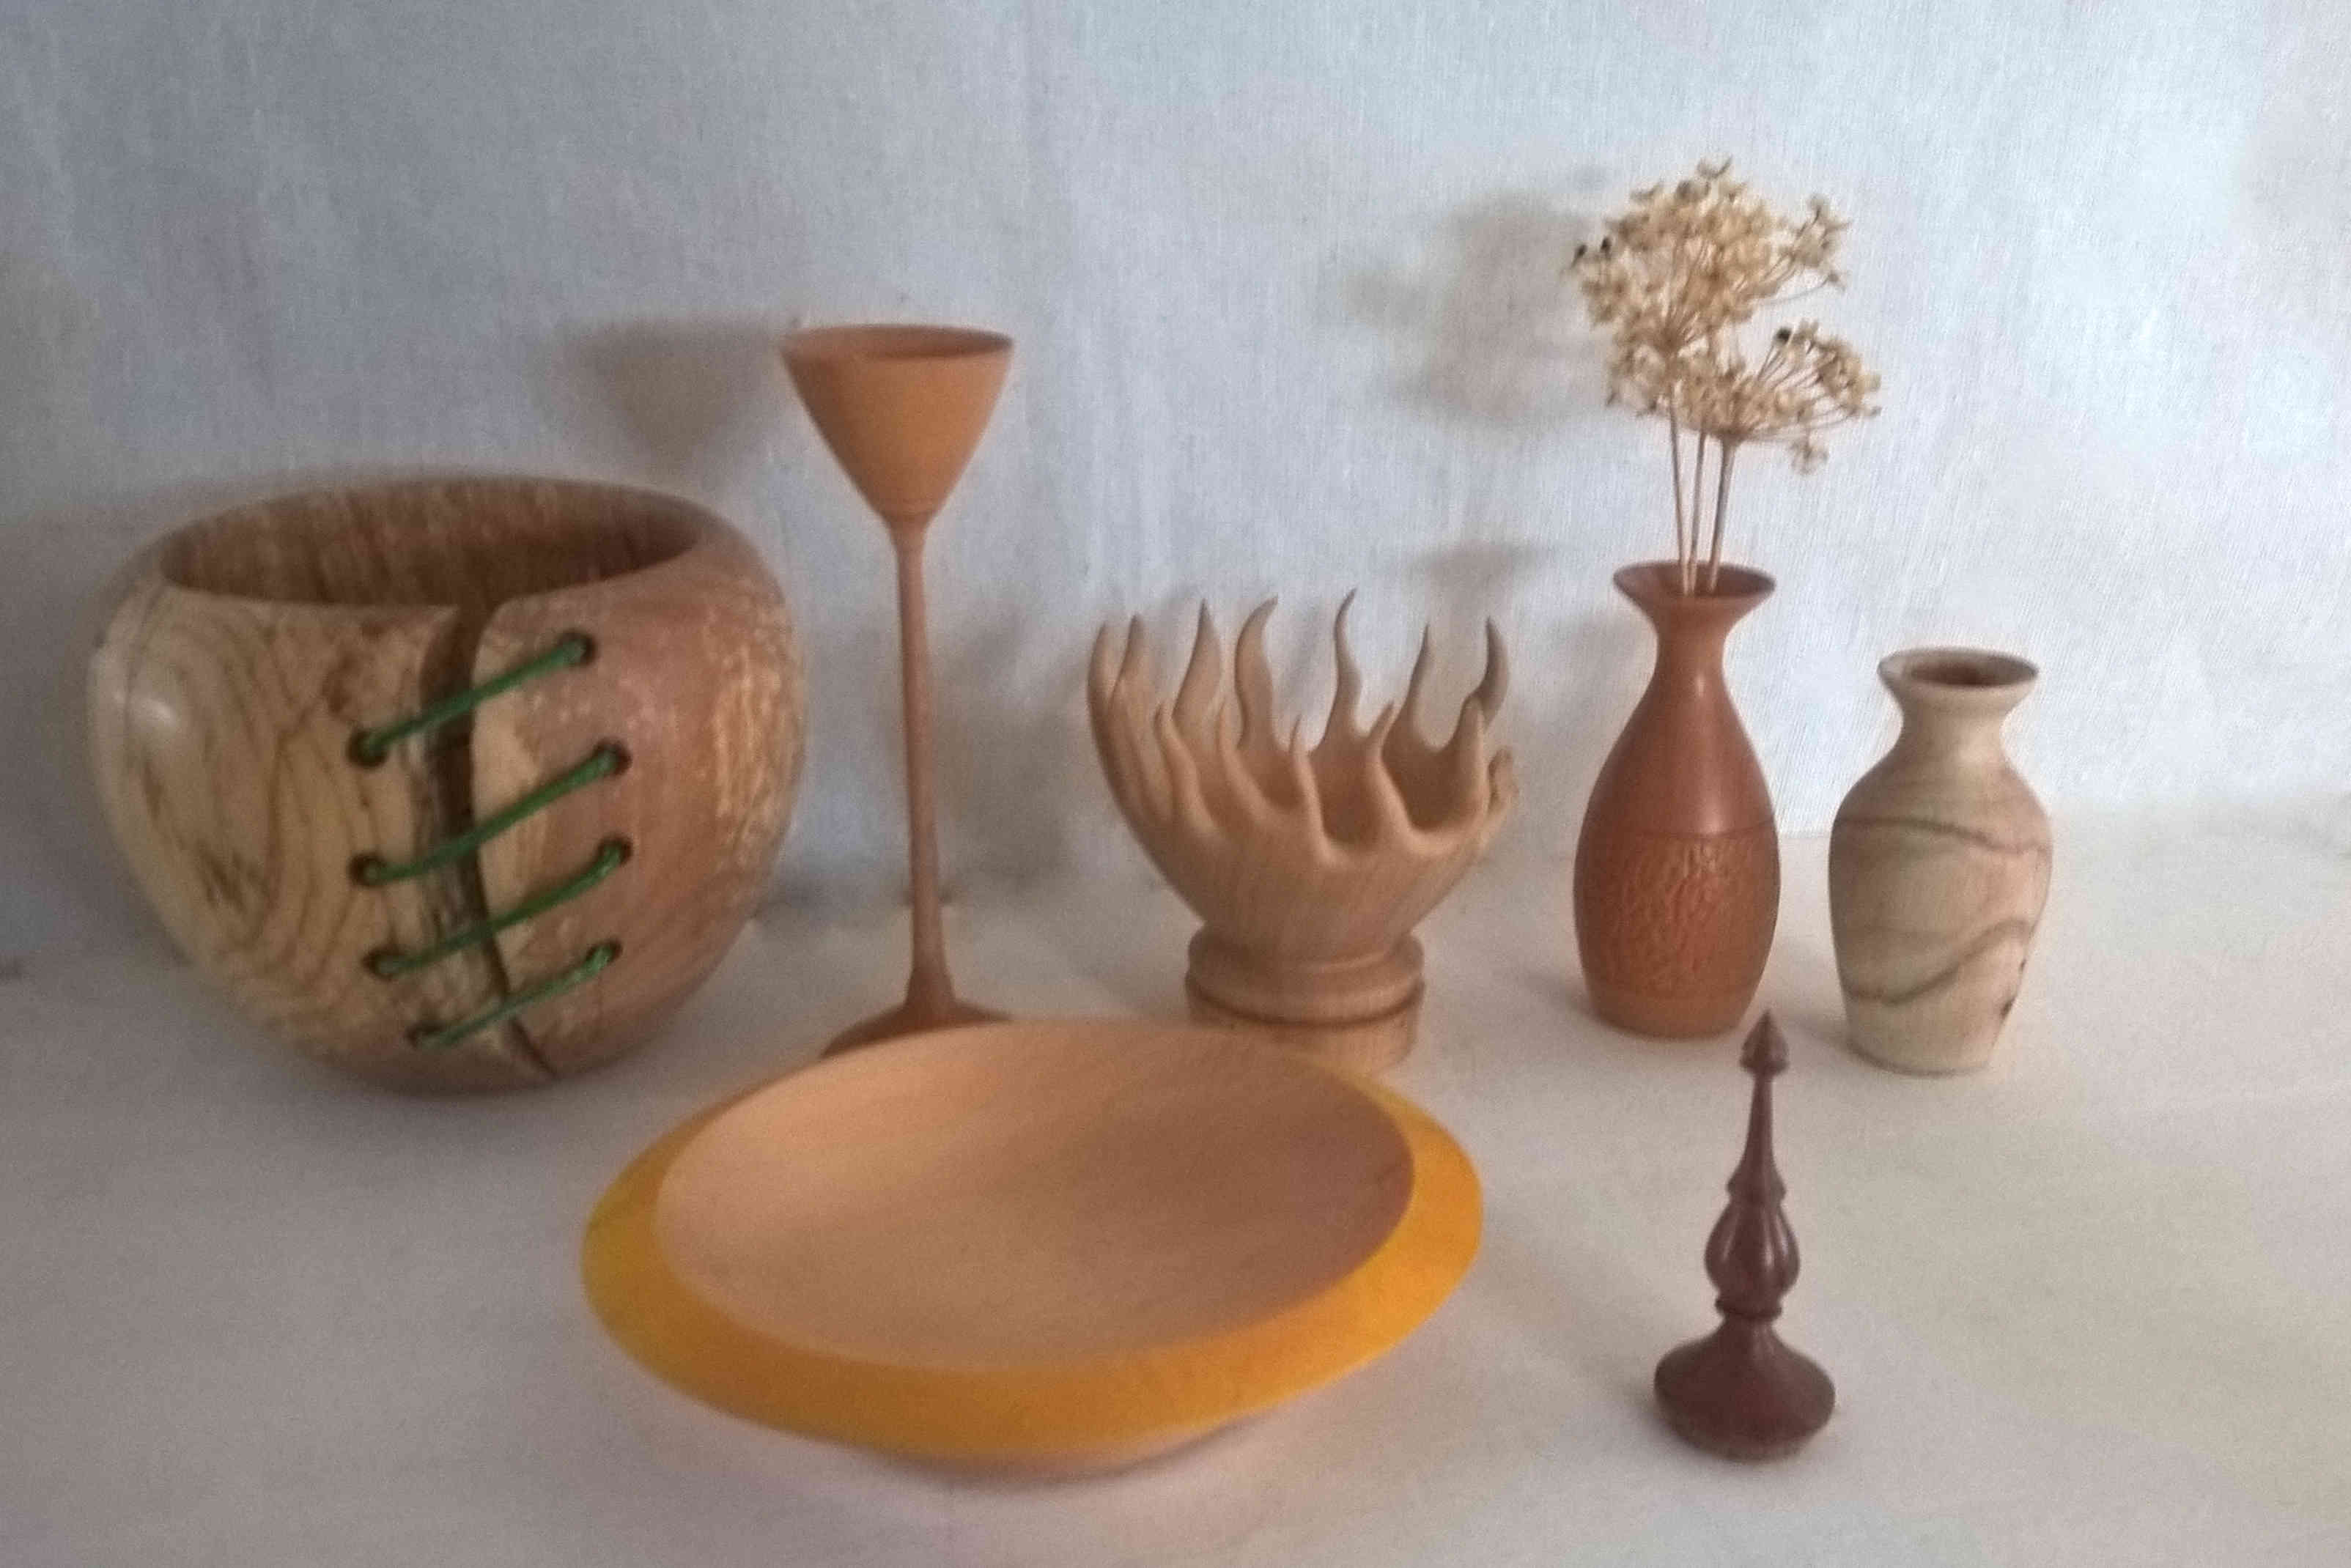 wood turning examples